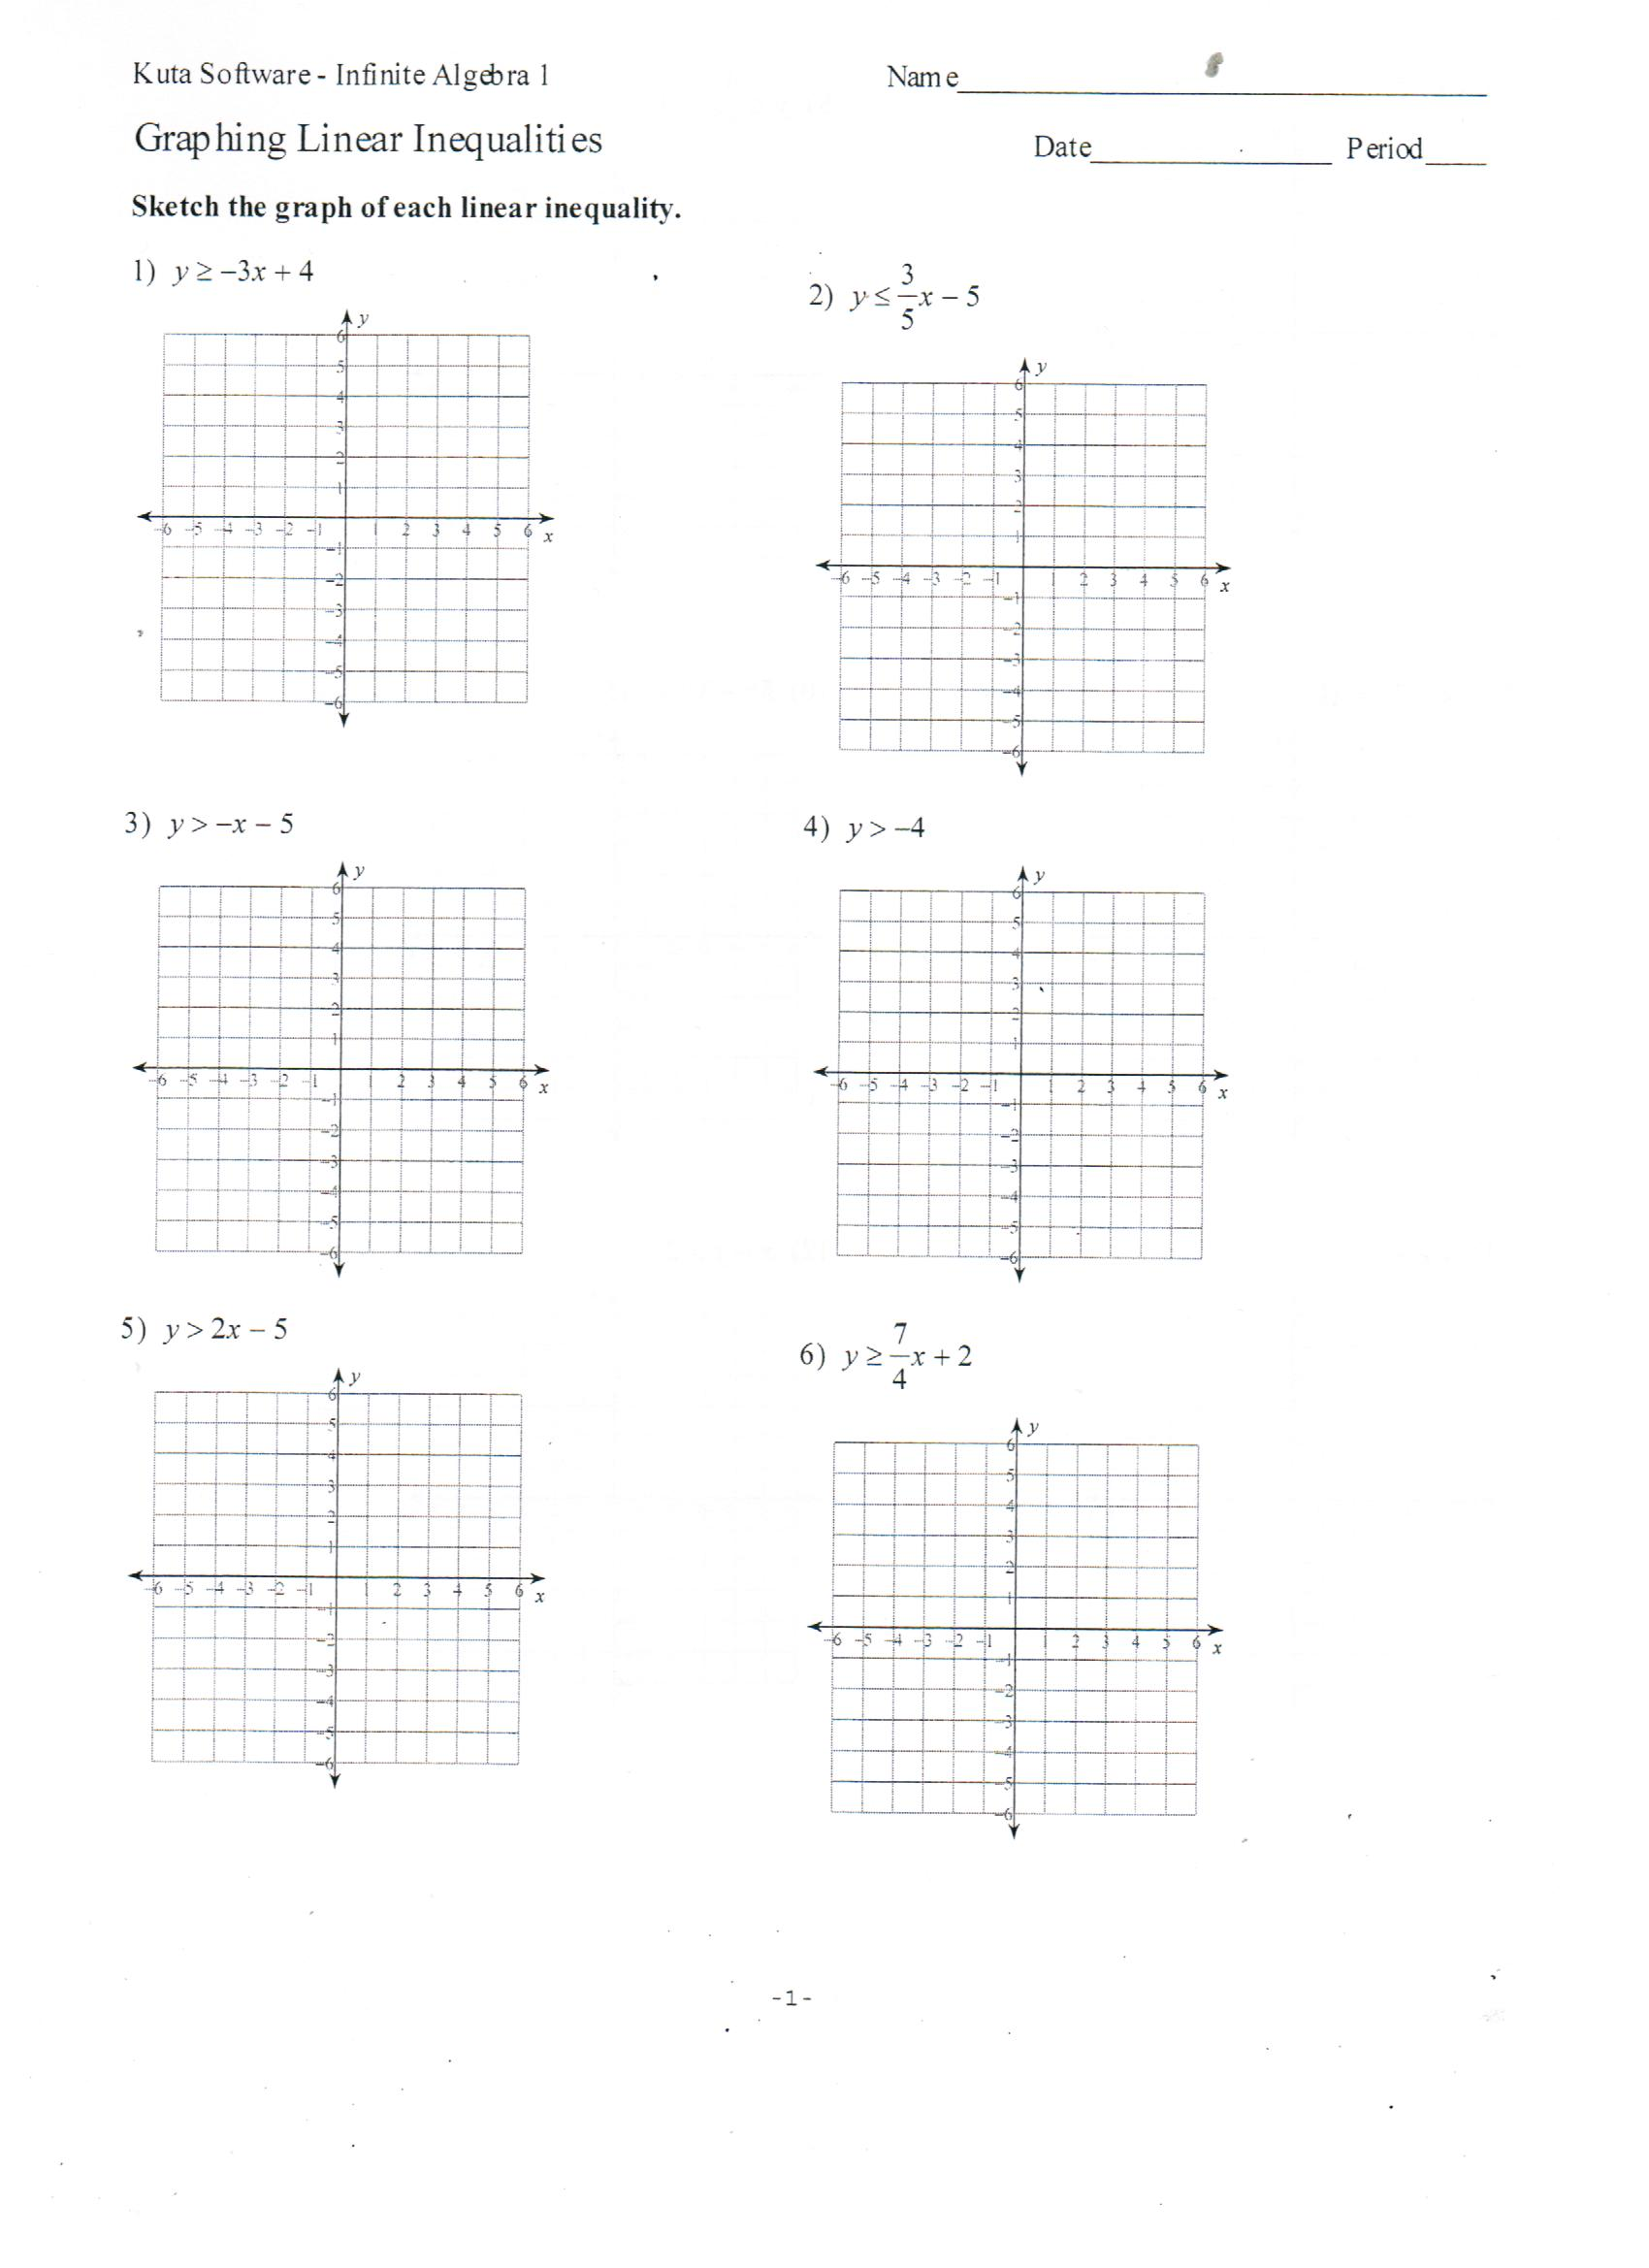 worksheet Graphing Linear Inequalities Worksheet Answers graph linear equations worksheet kuta tessshebaylo graphing with answer key jennarocca inequalities functions worksheets